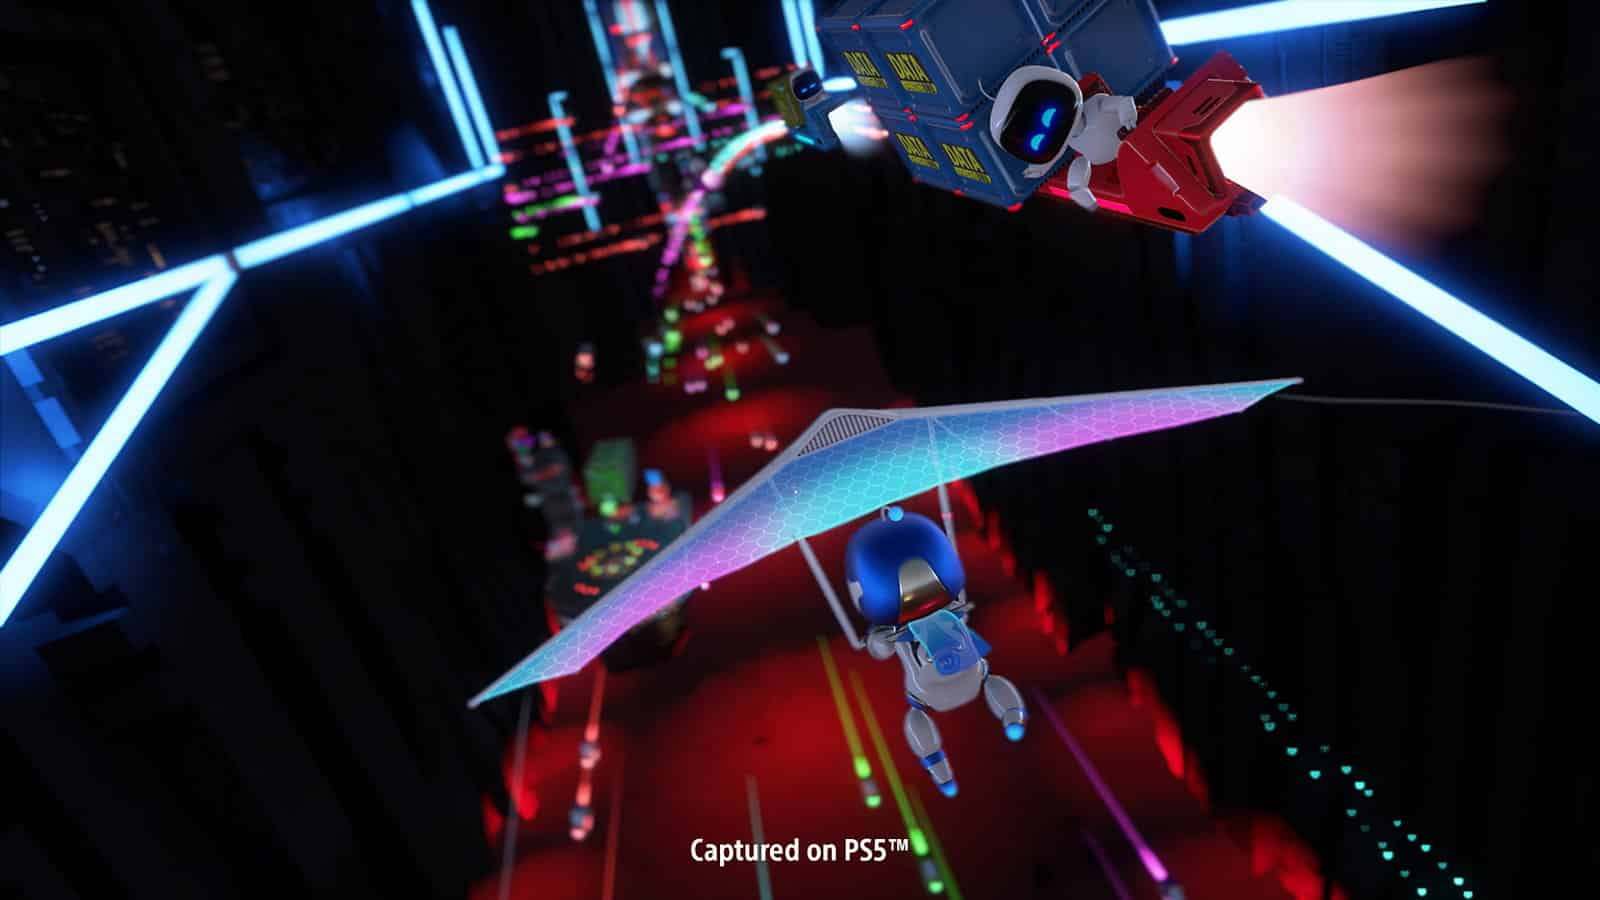 DualSense PlayStation 5 ASOBI Team best pack-in title since Super Mario World: Astro's Playroom